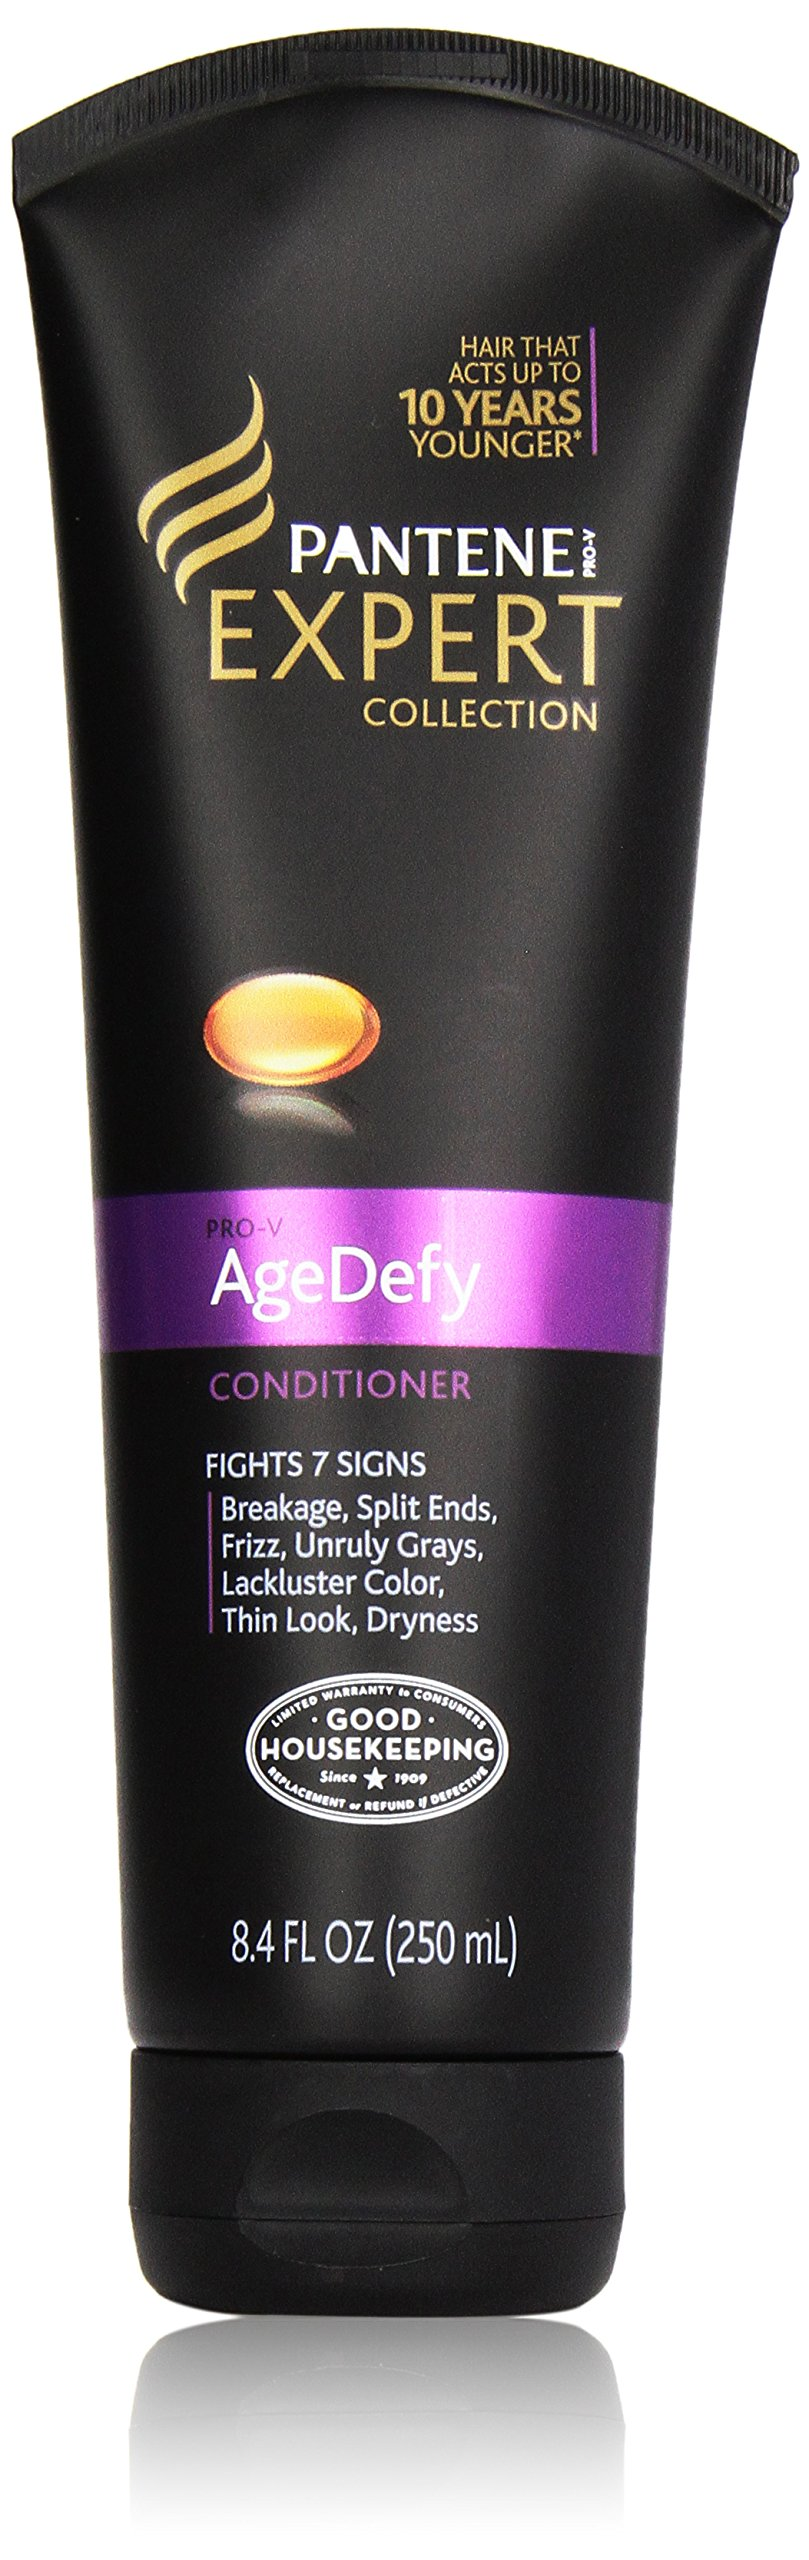 Pantene Pantene Pro-V Expert Collection AgeDefy Conditioner - 8.4 oz